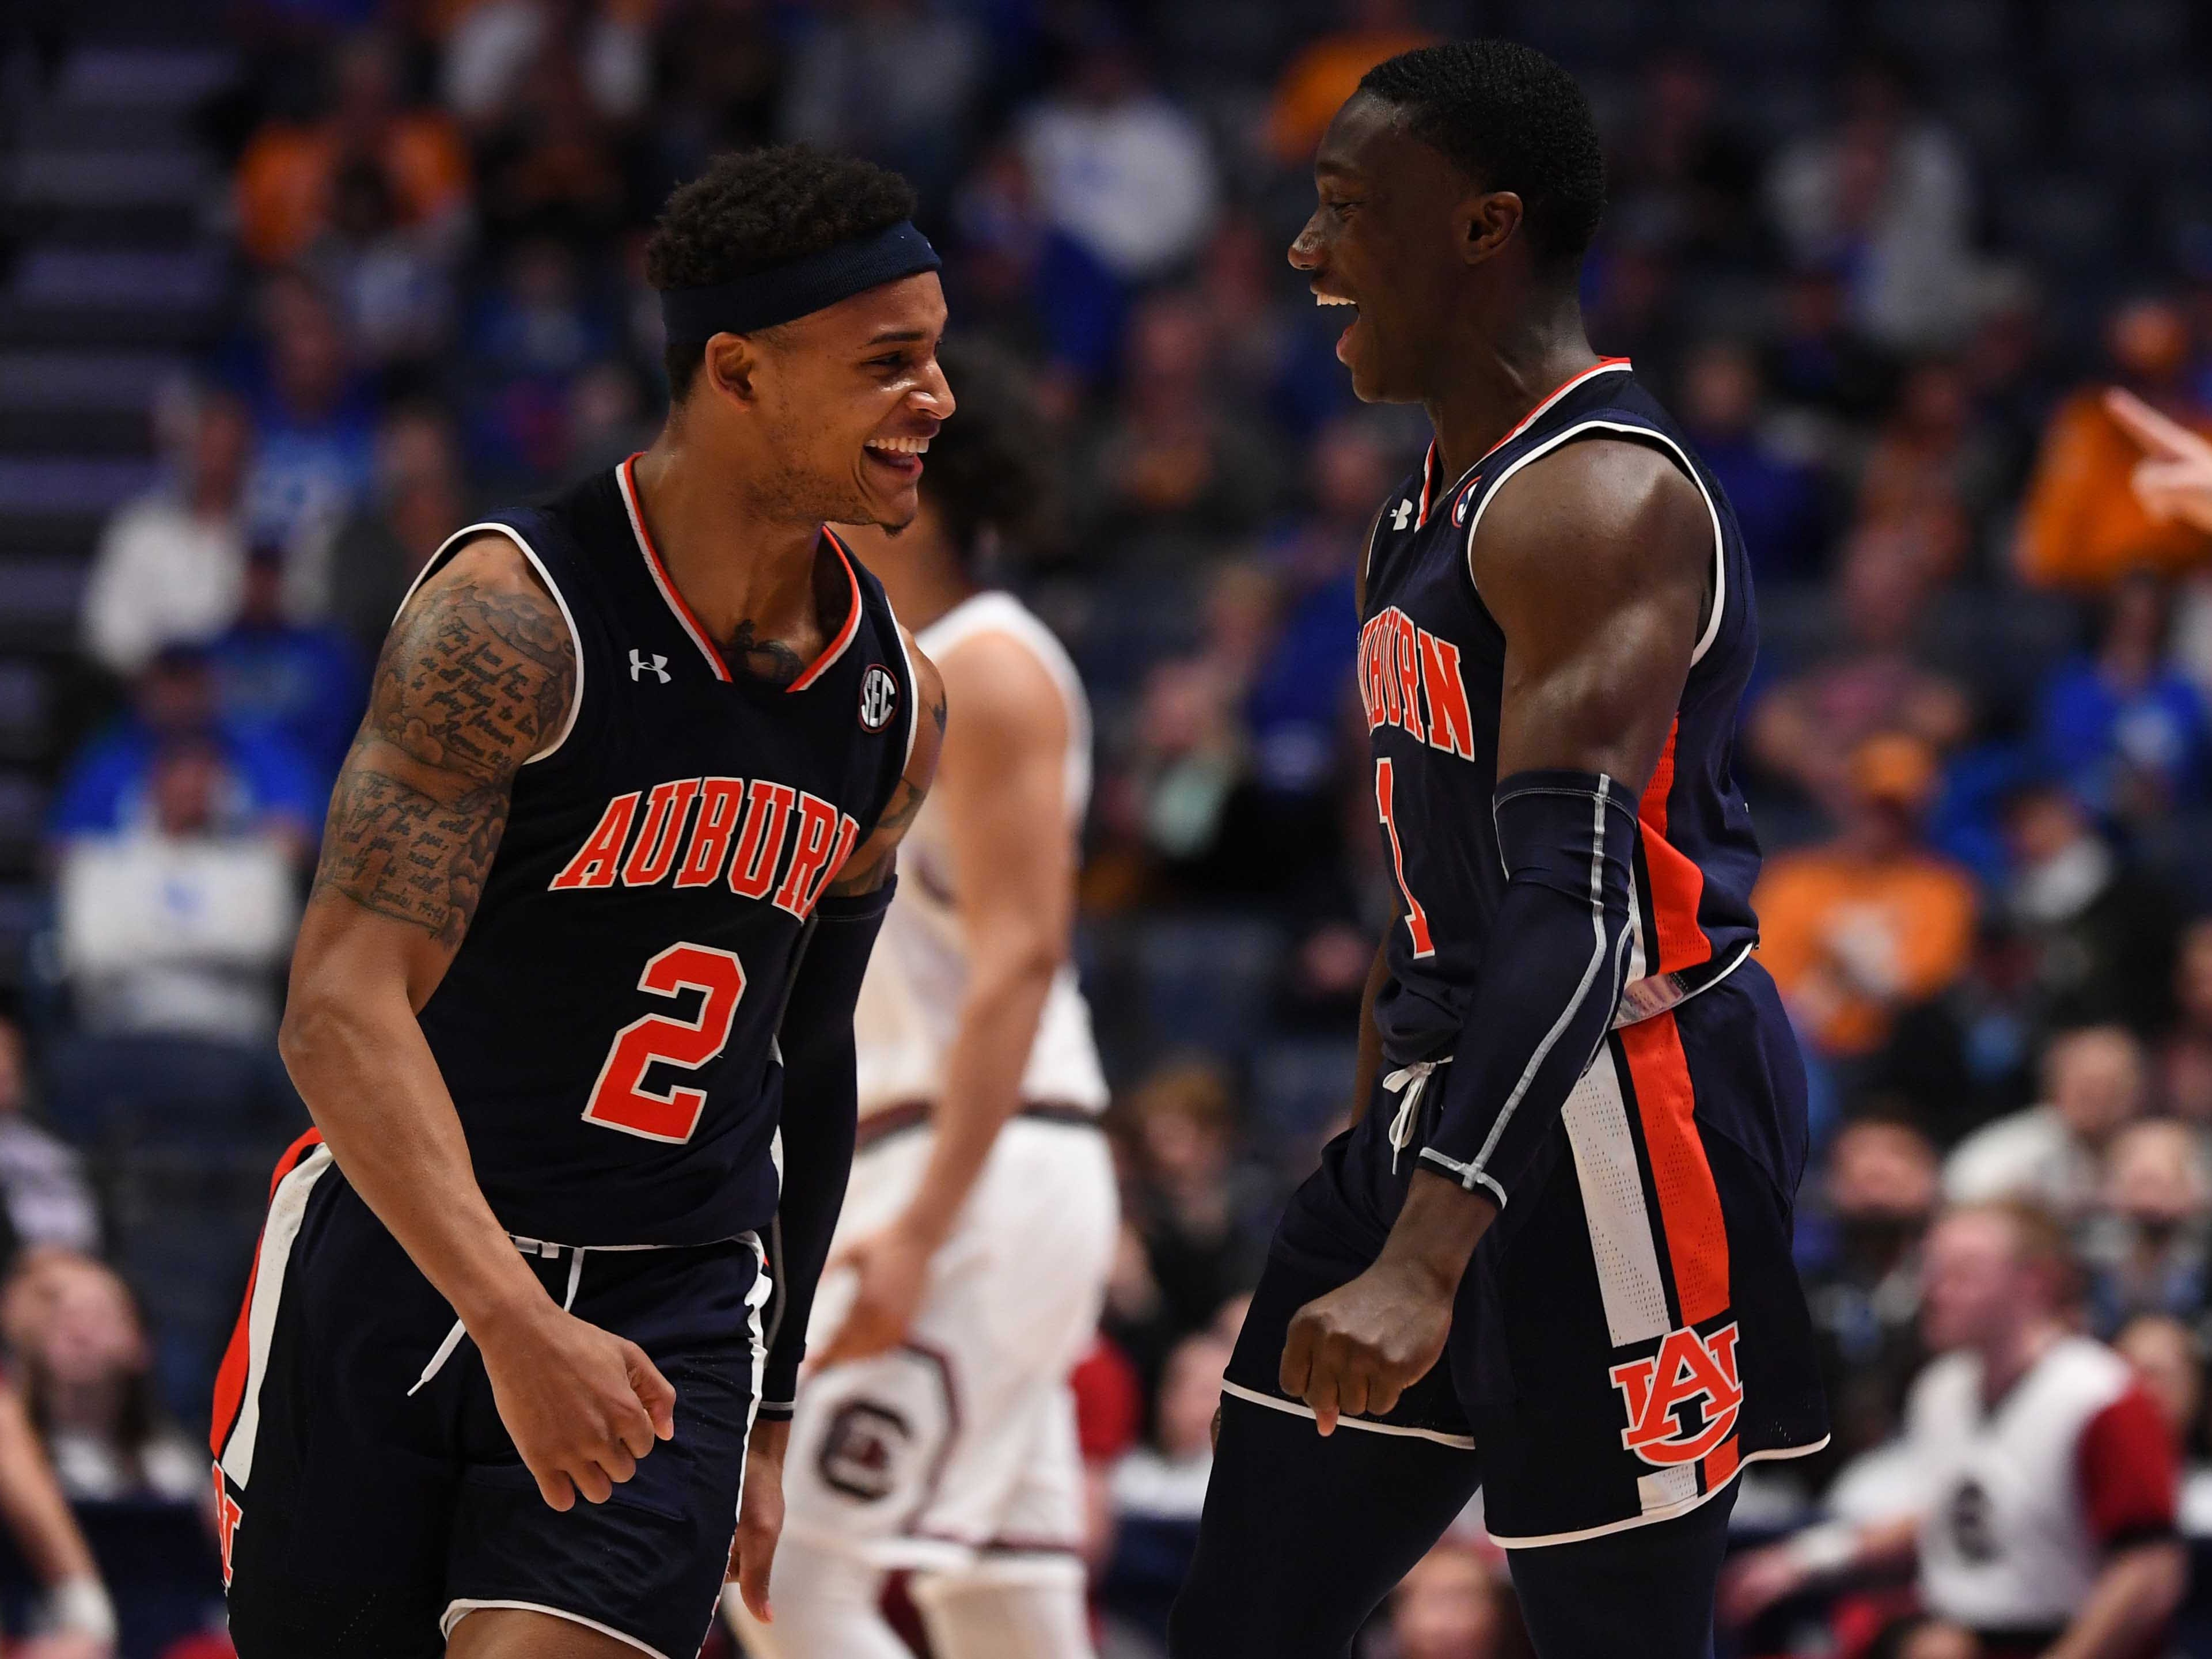 Auburn guard Jared Harper (1) and guard Bryce Brown (2) celebrate after a basket against South Carolina during the SEC Tournament on March 15, 2019, in Nashville, Tenn.